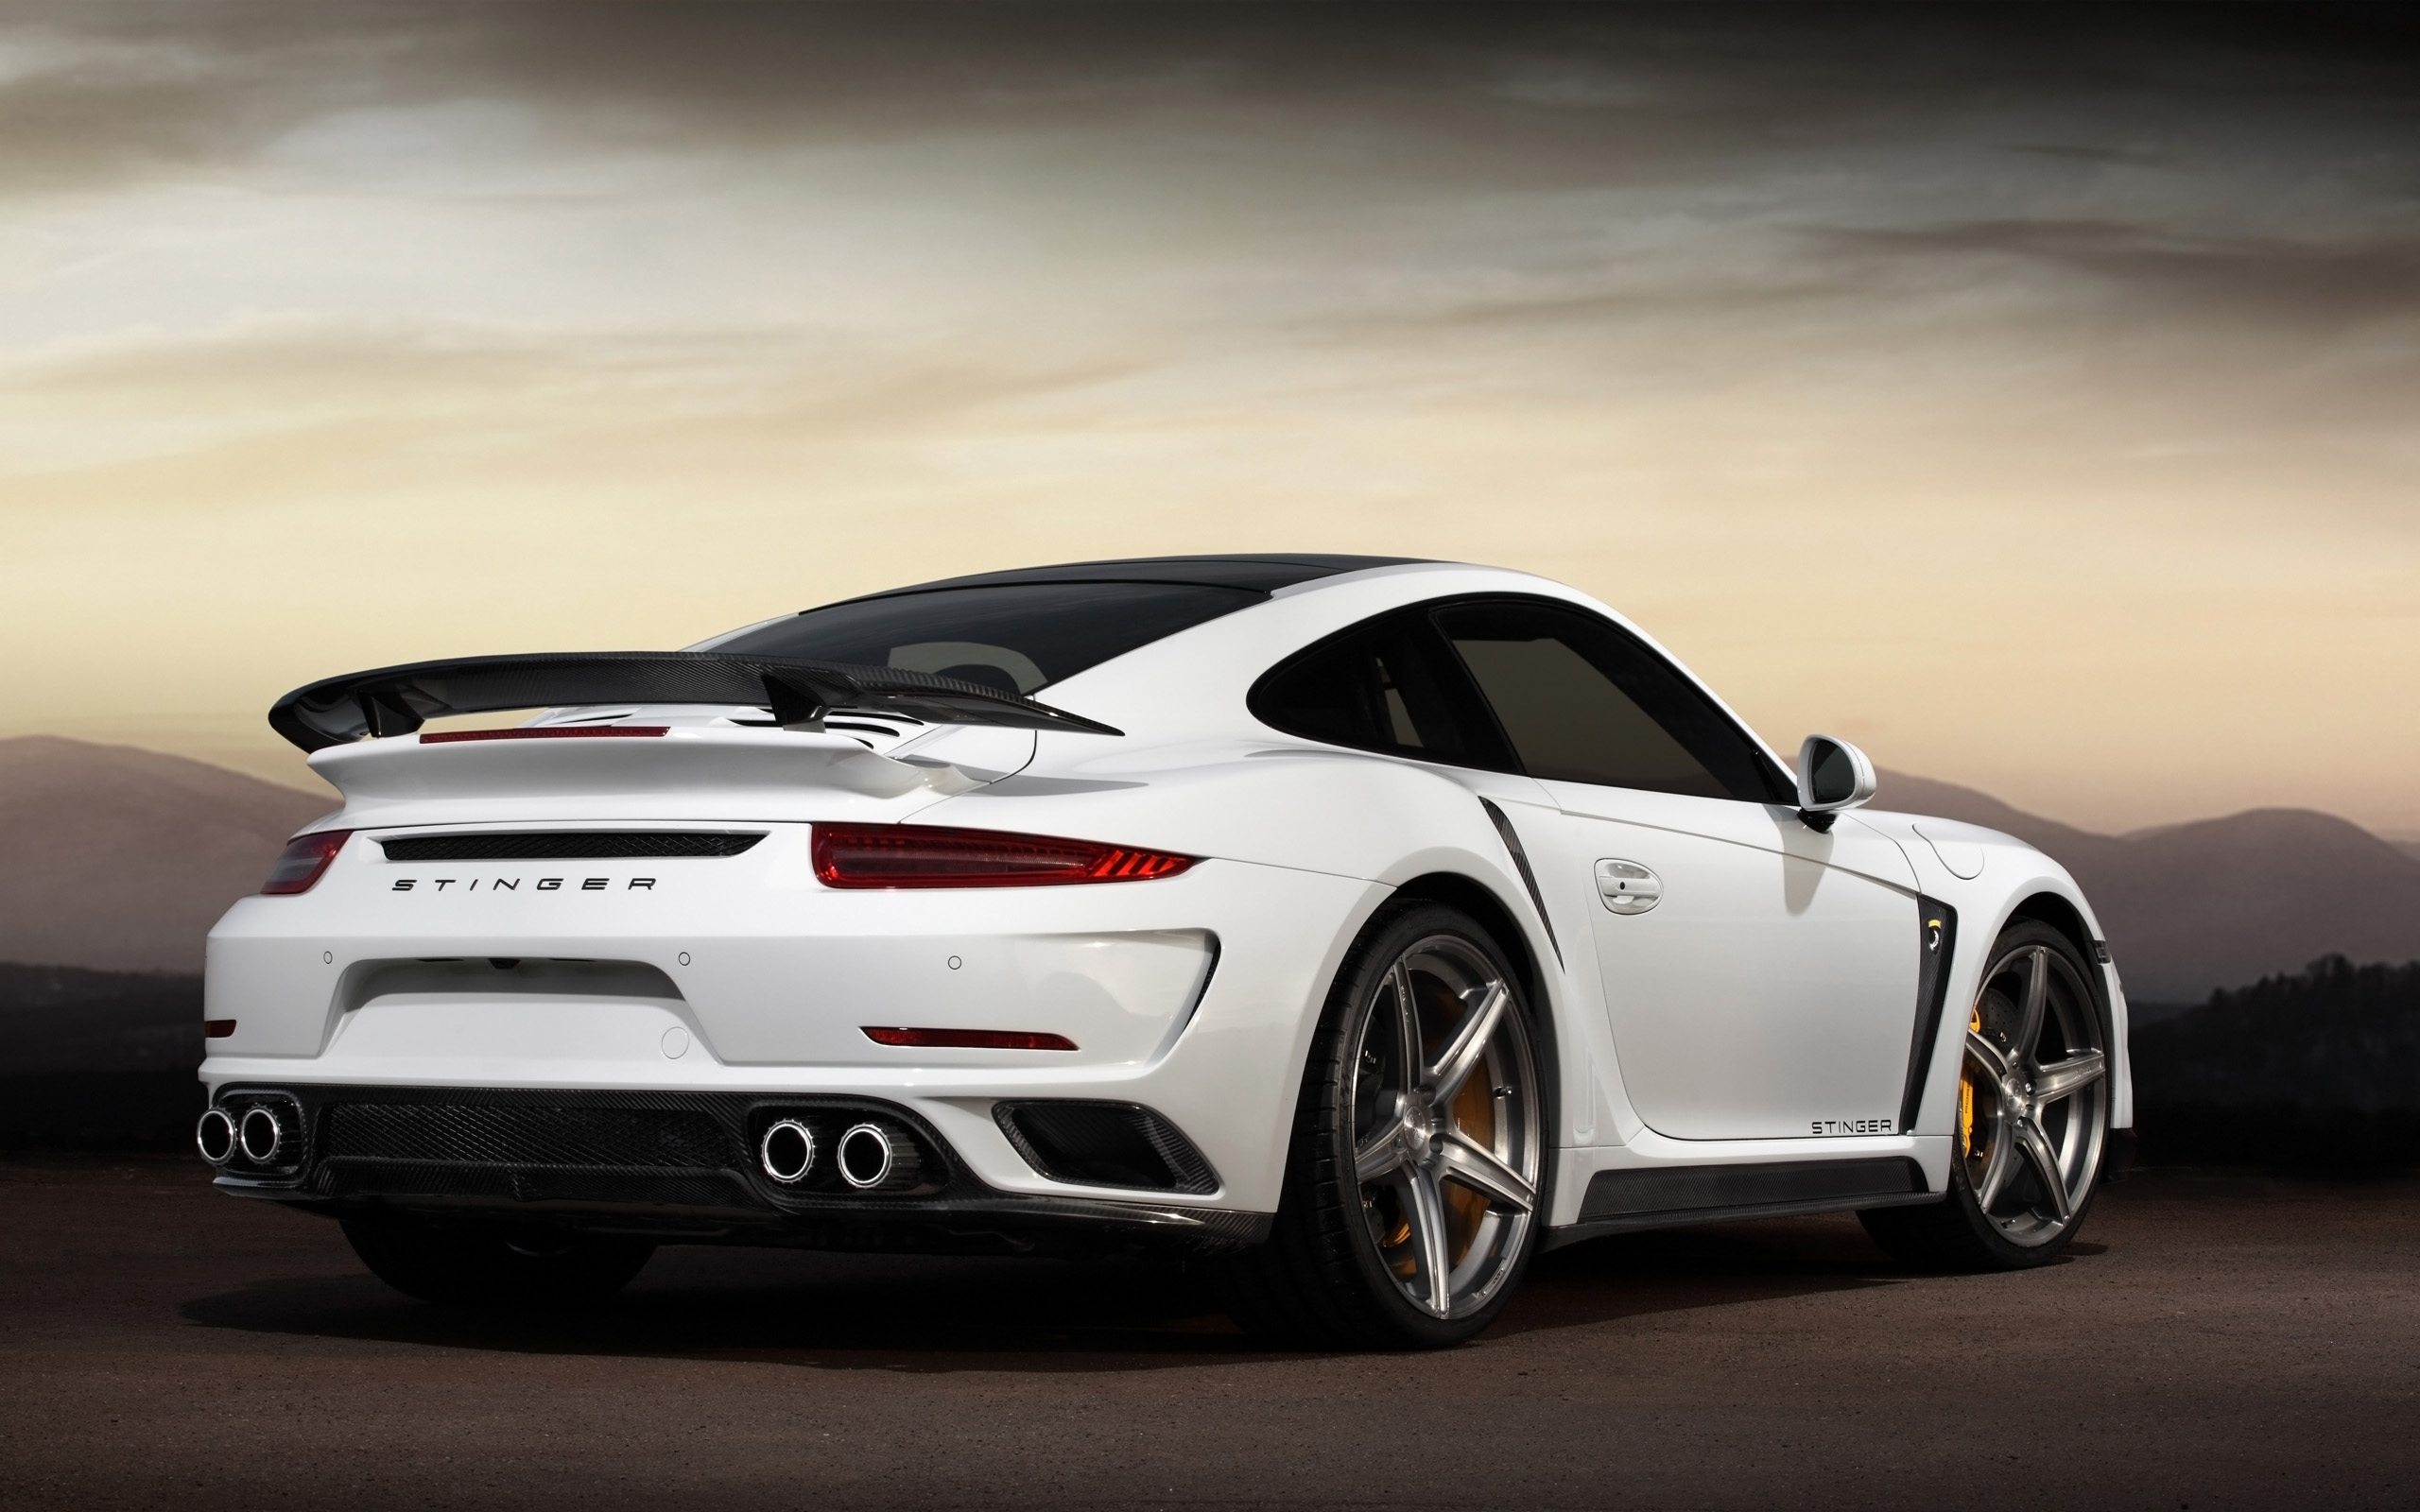 2015 topcar porsche 991 turbo stinger gtr 2 wallpaper hd. Black Bedroom Furniture Sets. Home Design Ideas